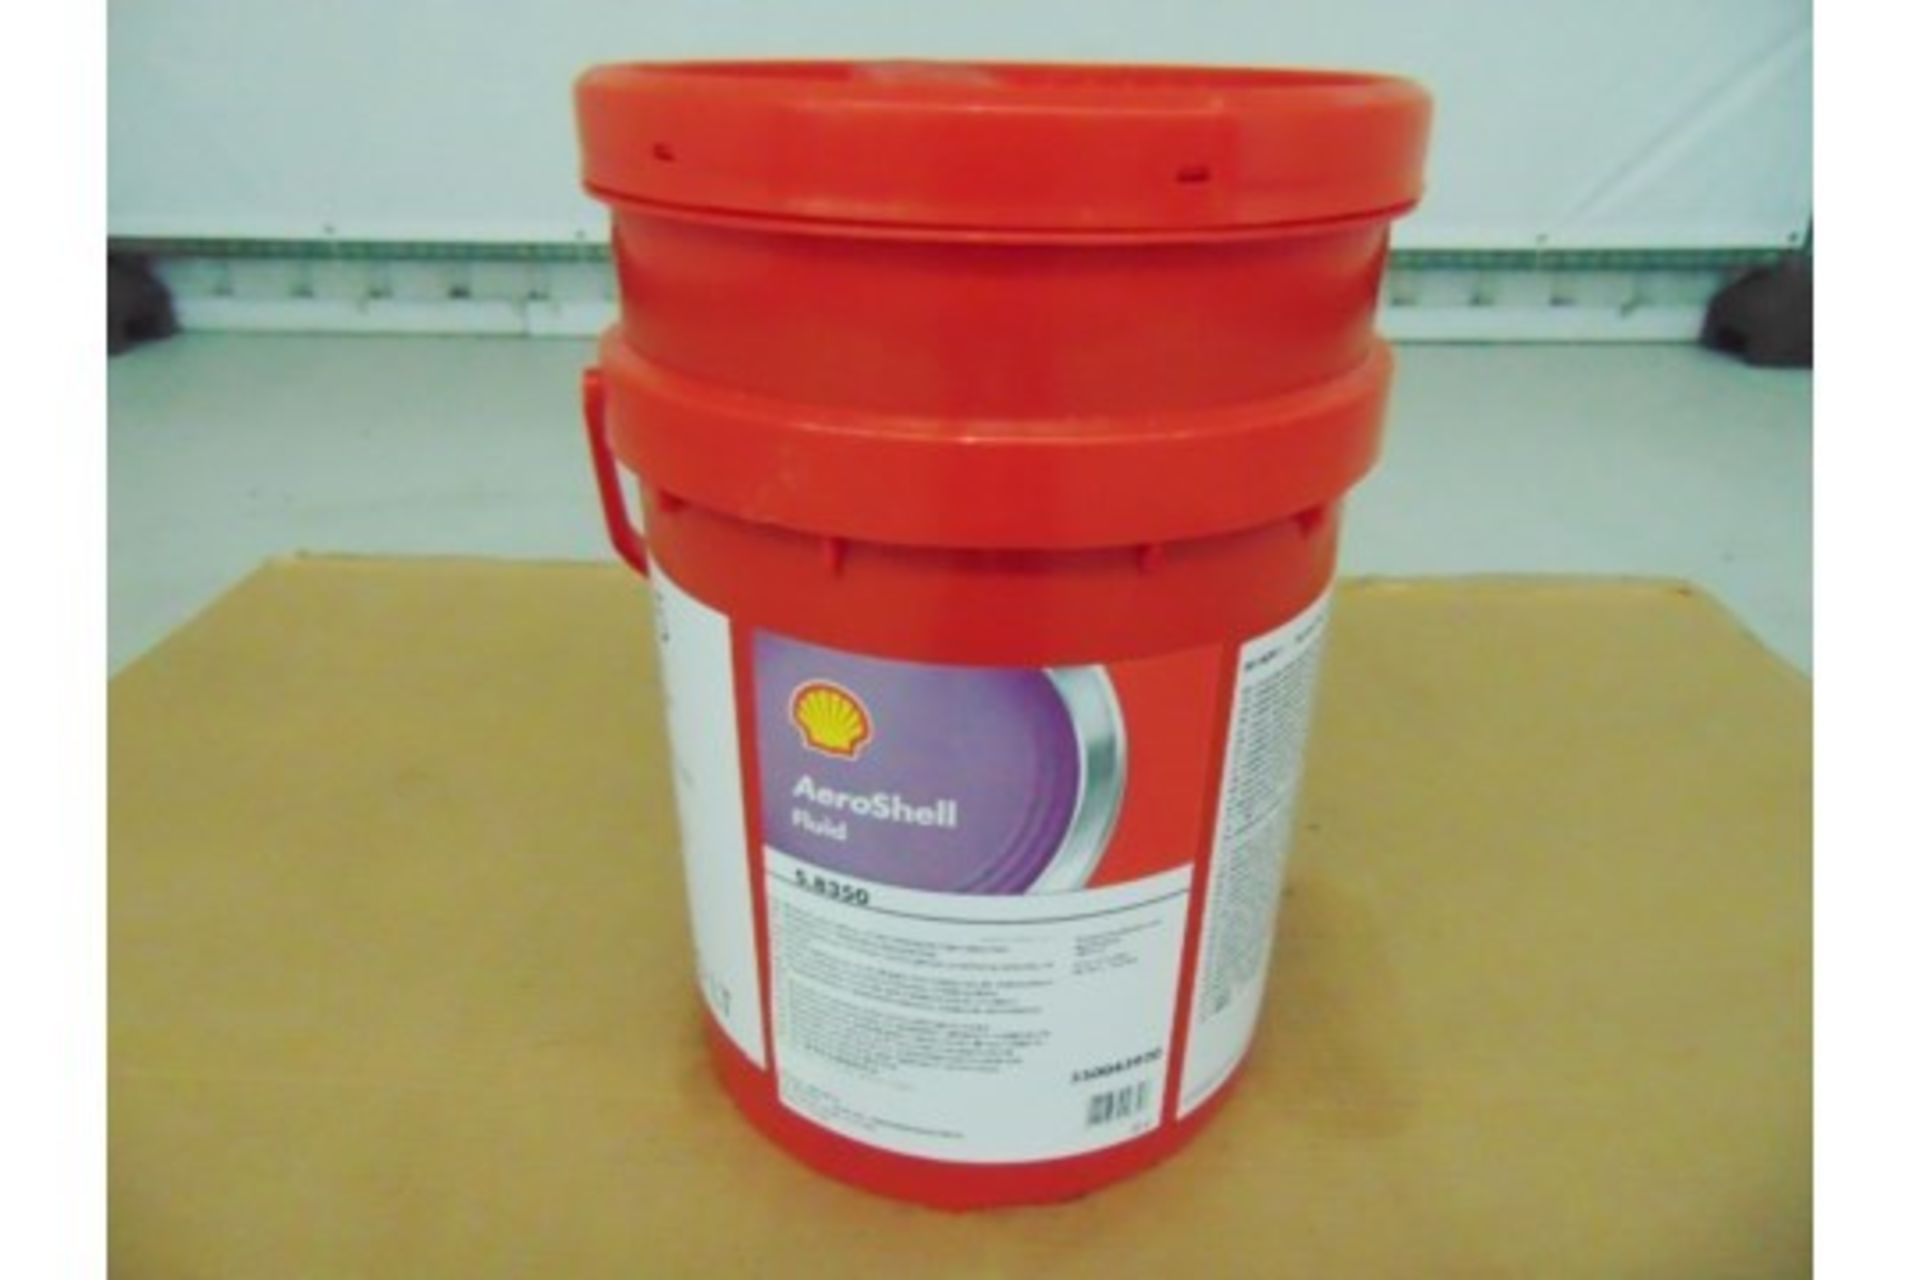 Lot 26608 - 1 x Unissued 20L Drum of Aeroshell S.8350 Helicopter Lubricating Oil